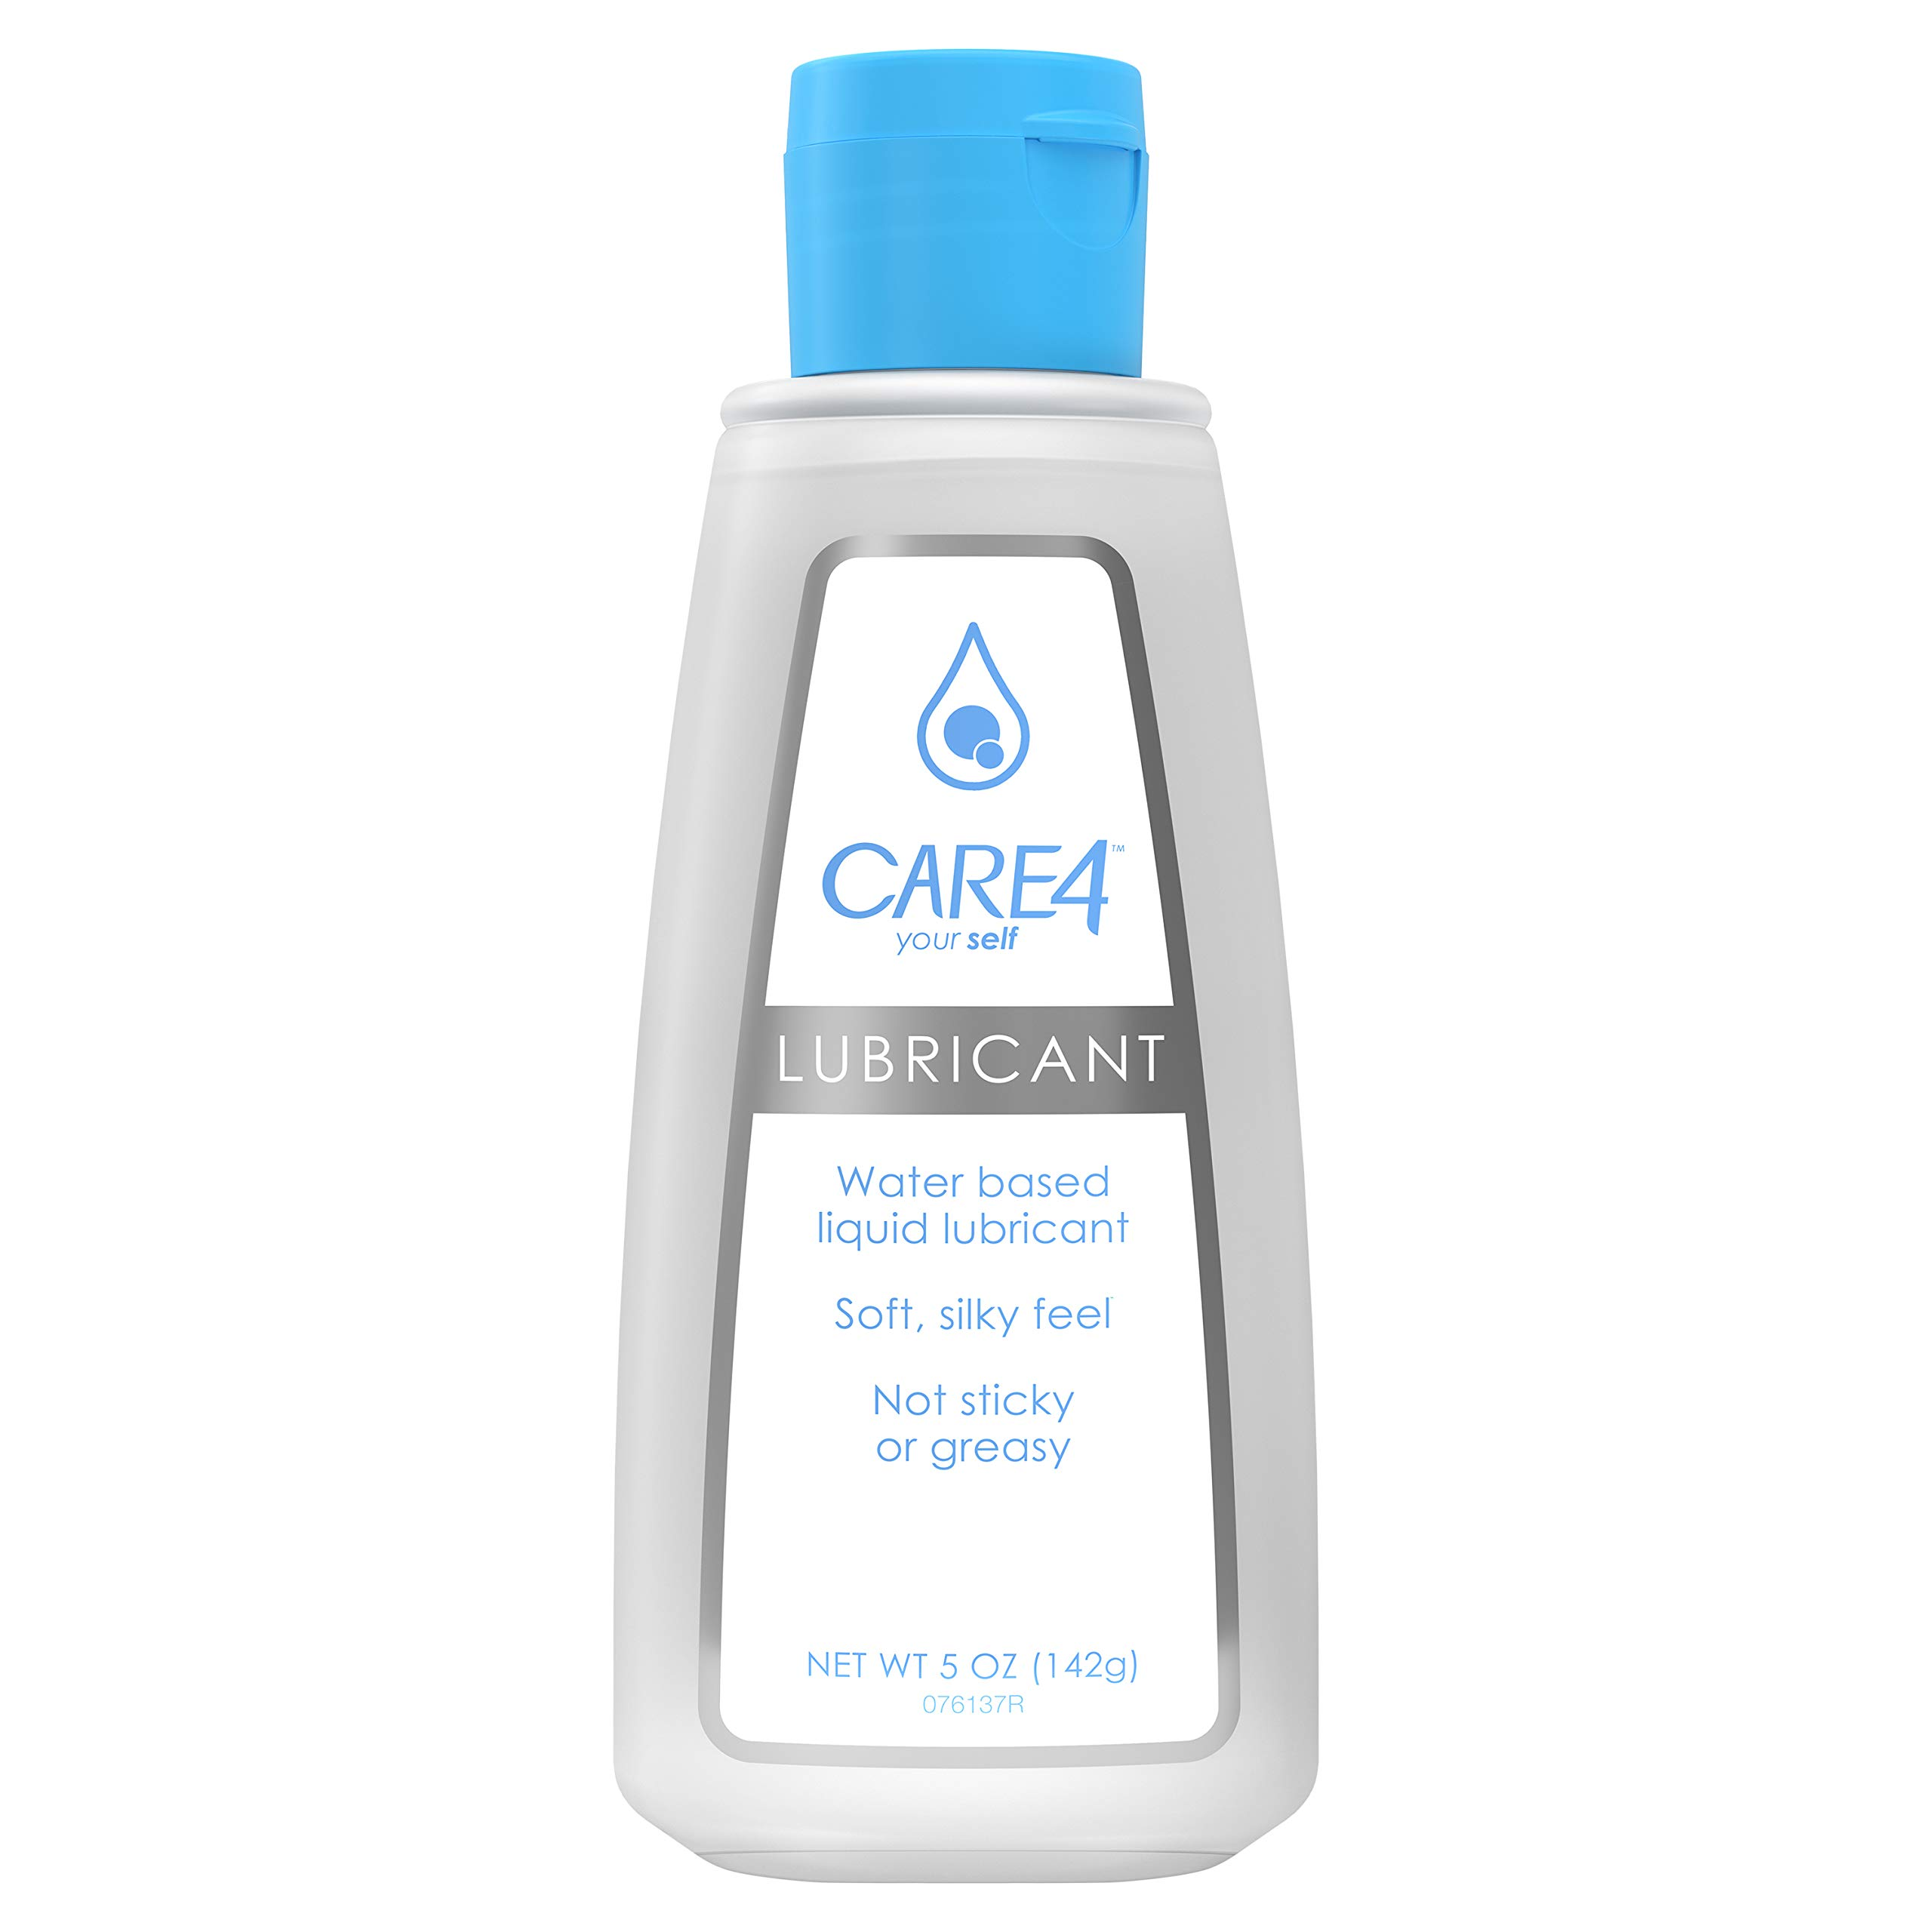 Care4 Personal Liquid Lubricant, Water-based - Soft, Silky Feel - not Sticky or Greasy, 5oz Bottle